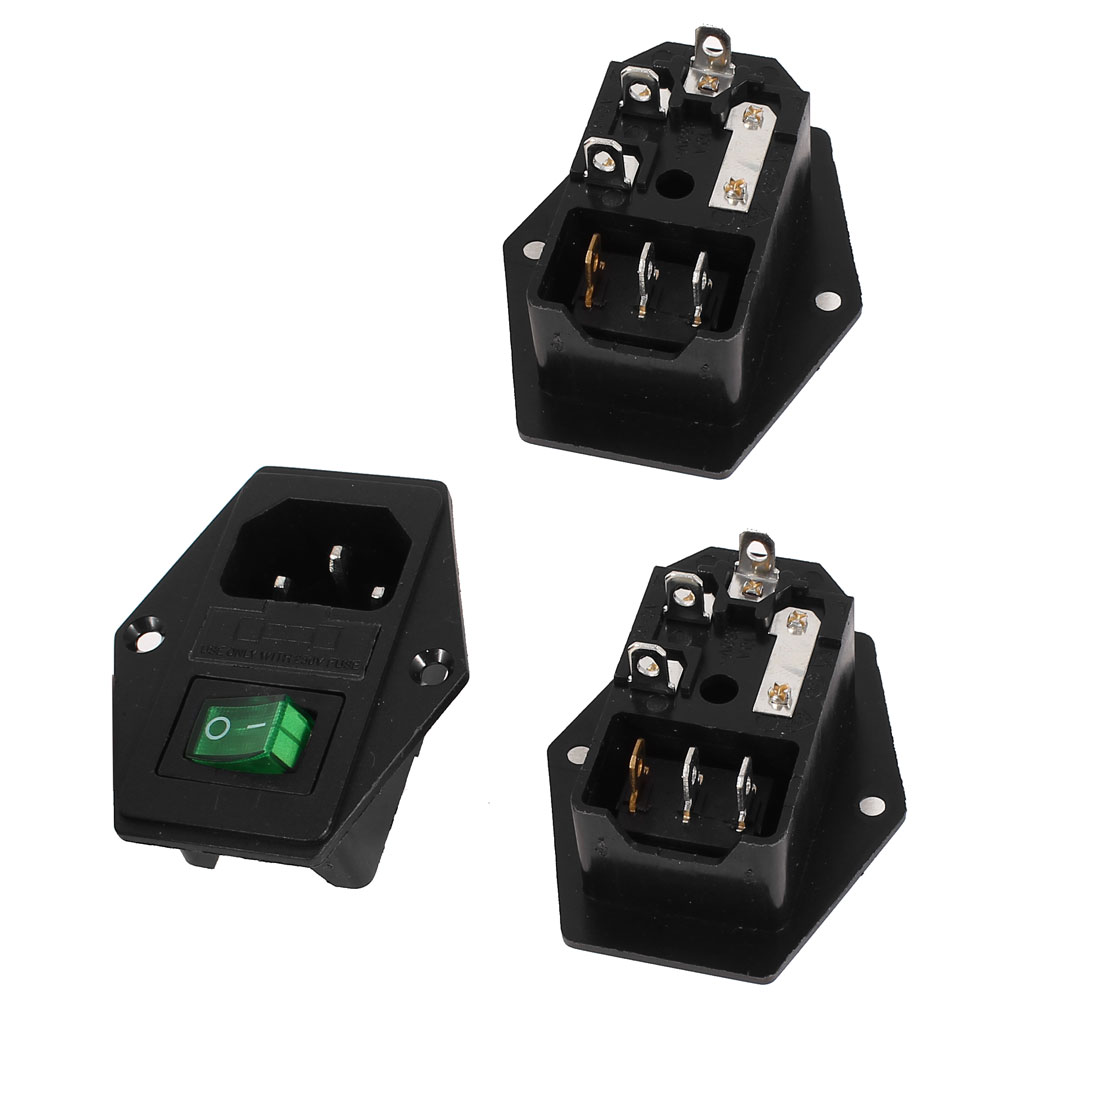 3 Pcs 3Pin SPST Green Light Rocker Switch IEC320 C14 Inlet Power Socket w Fuse AC 250V 5A